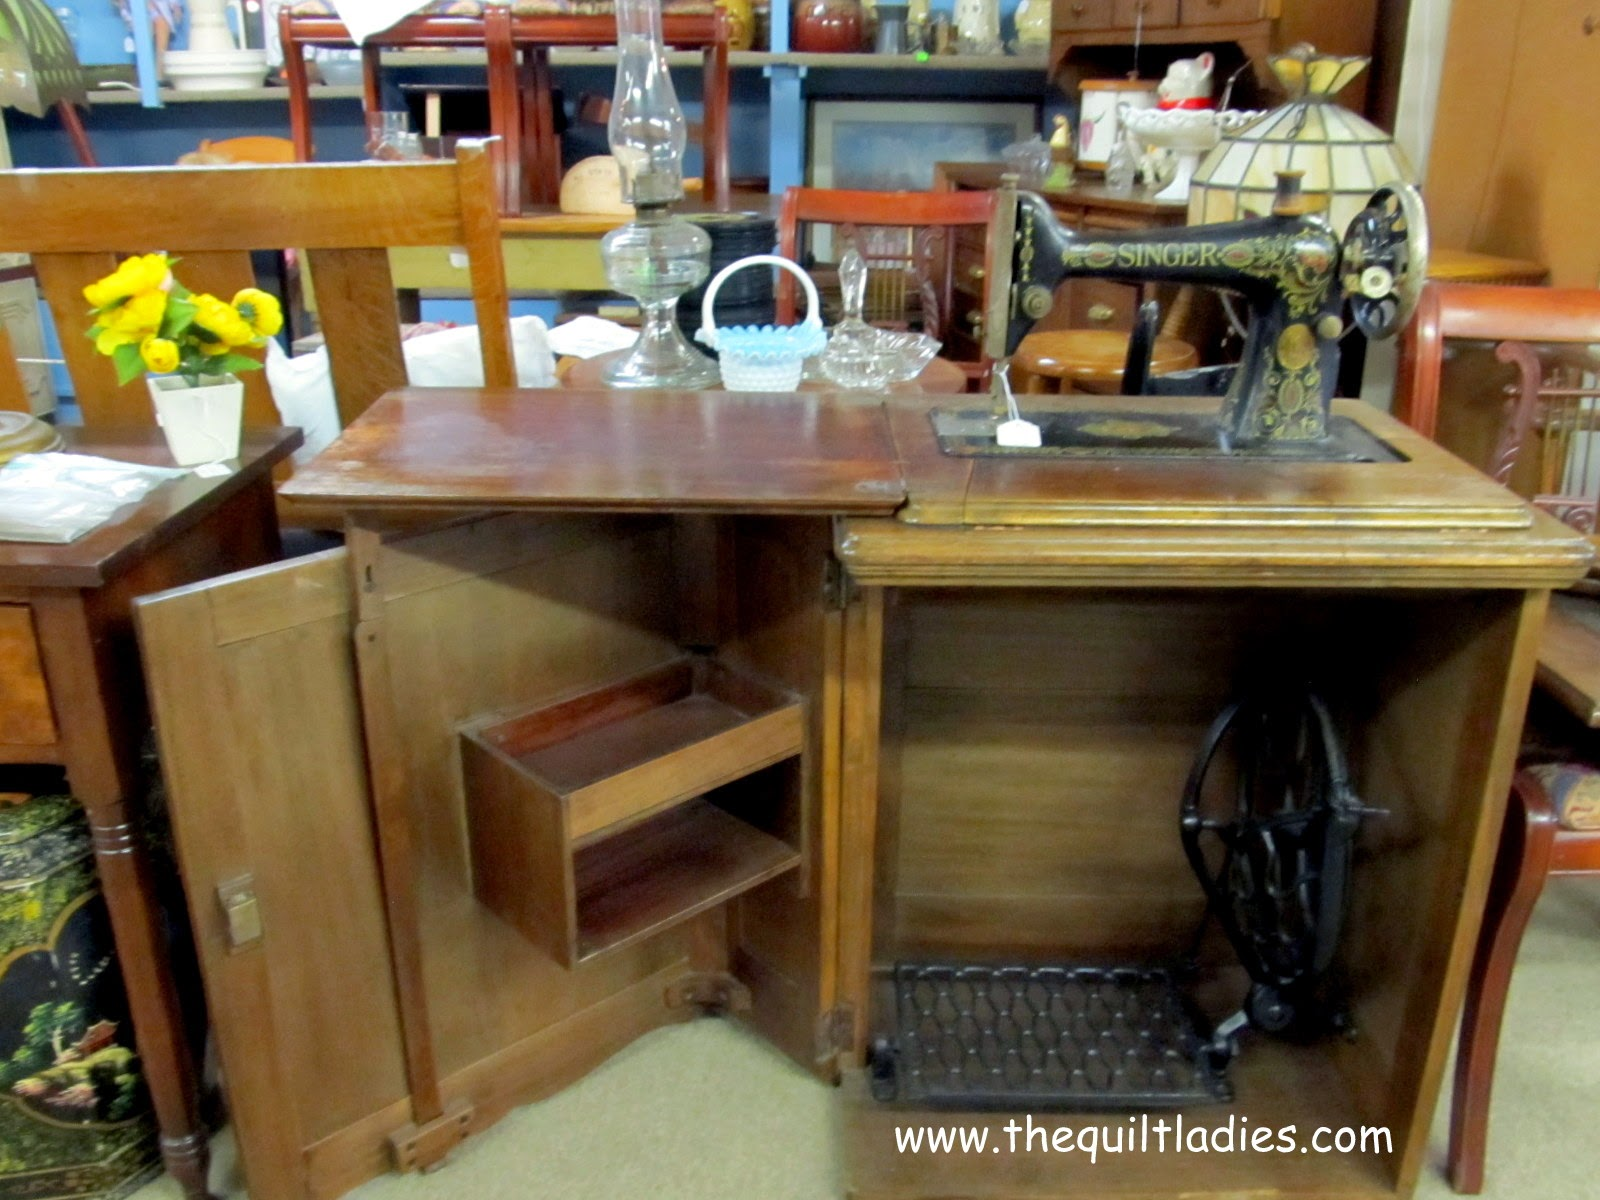 Little Singer Sewing Machine in cabinet